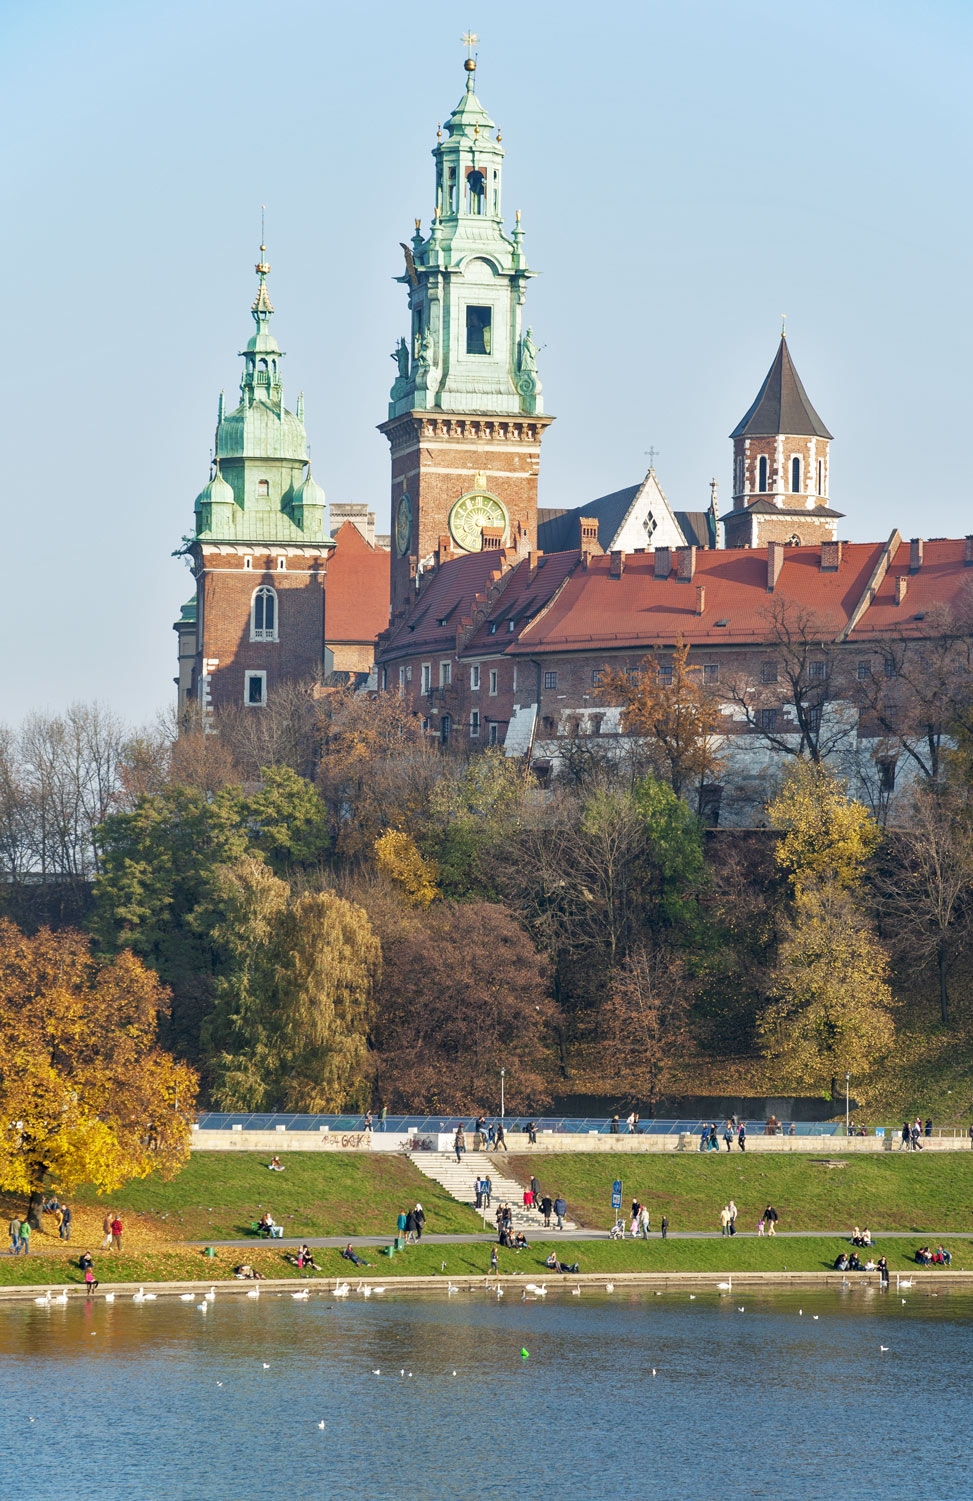 Wawel Castle, Cathedral towers and Vistula River in Krakow, Poland